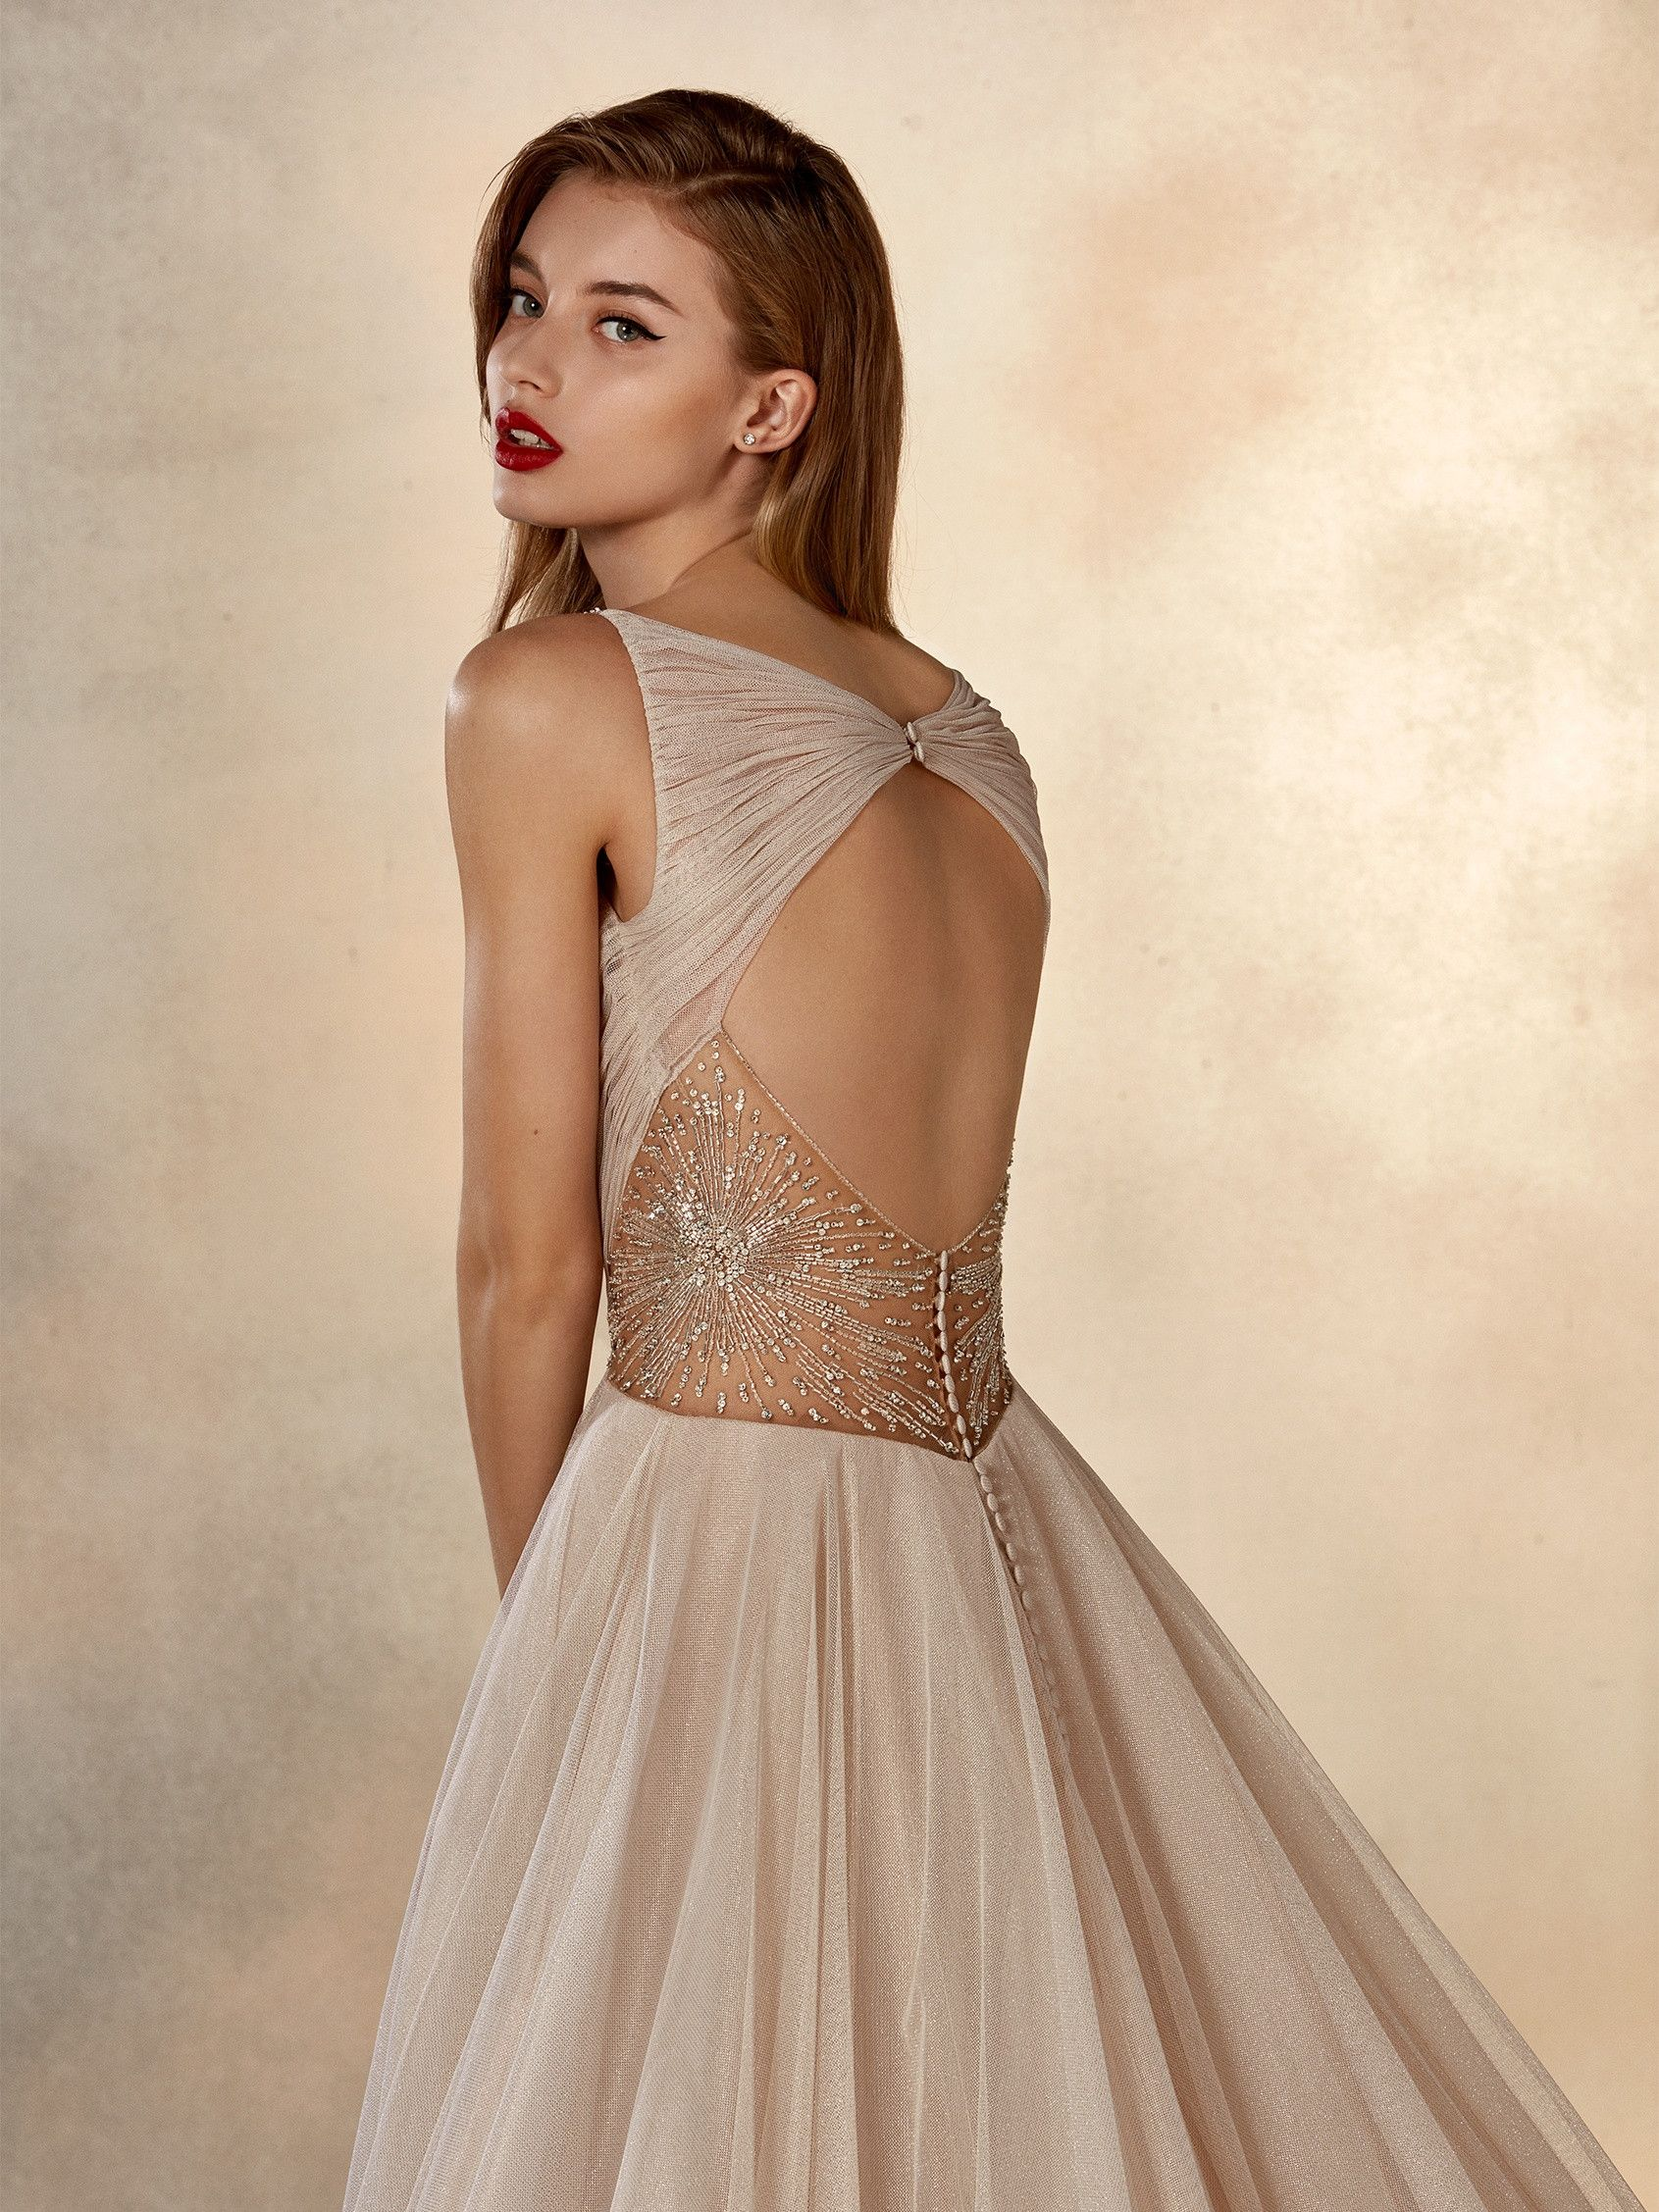 Stunning keyhole back princess wedding gown in lurex tulle